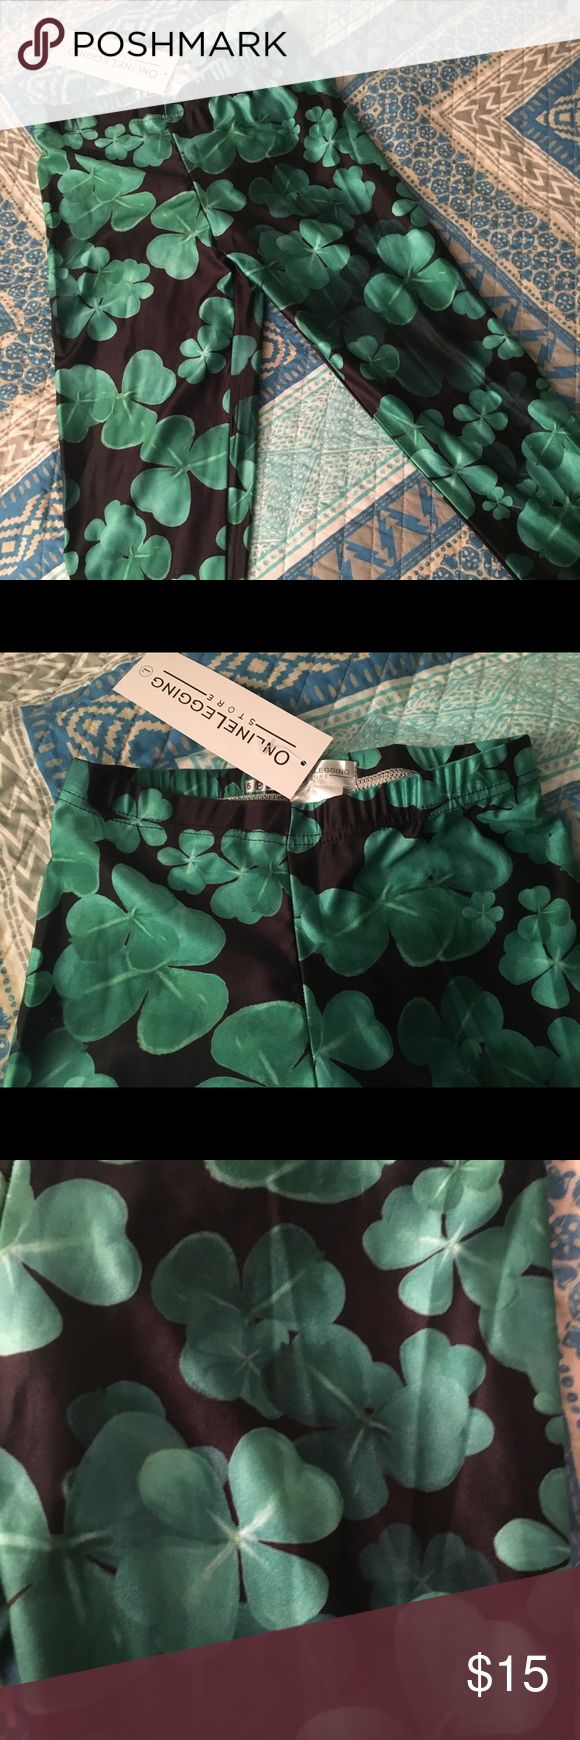 Clover leaf leggings Black leggings with green clover leaf design perfect for St. Patty's ... only selling because I didn't end up wearing them with my outfit last year Online Legging Store Pants Leggings